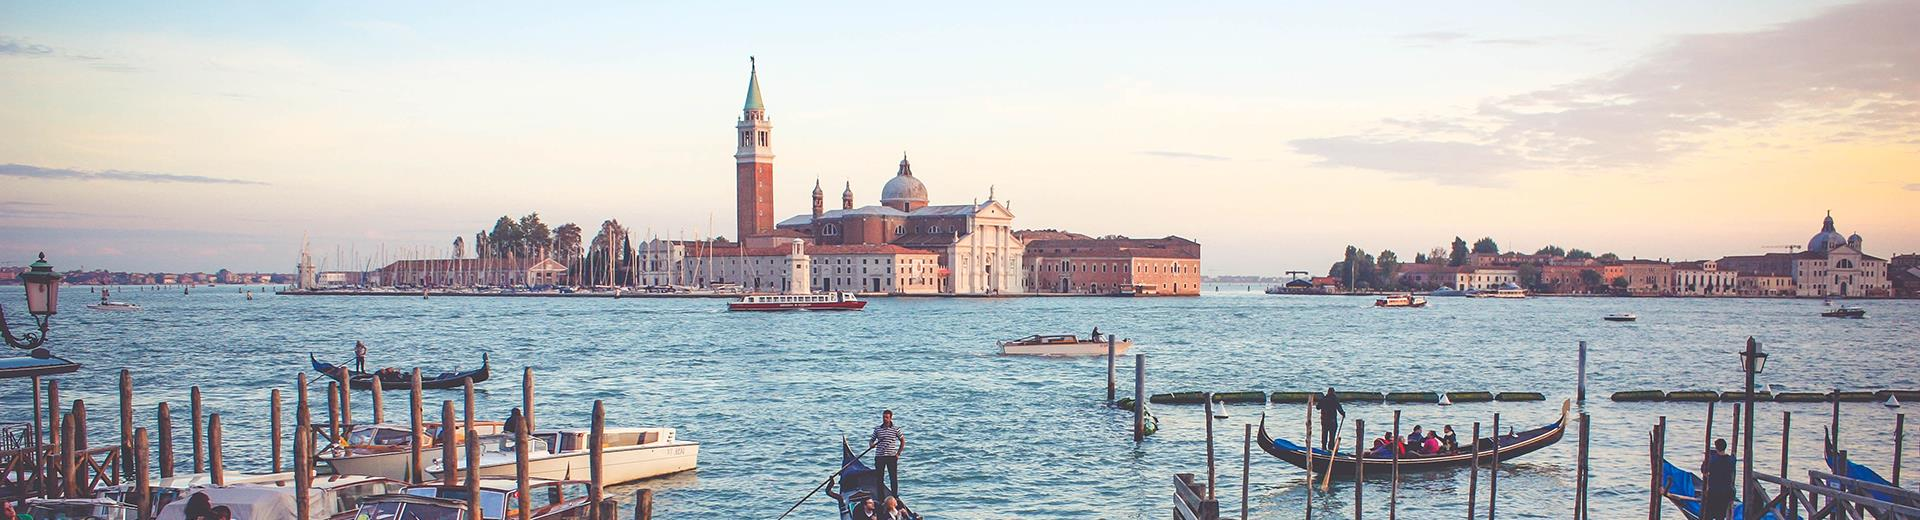 Discover the charm of Venice: Hotel Turismo is an ideal starting point to reach this unique city. Book now and discover our offers!